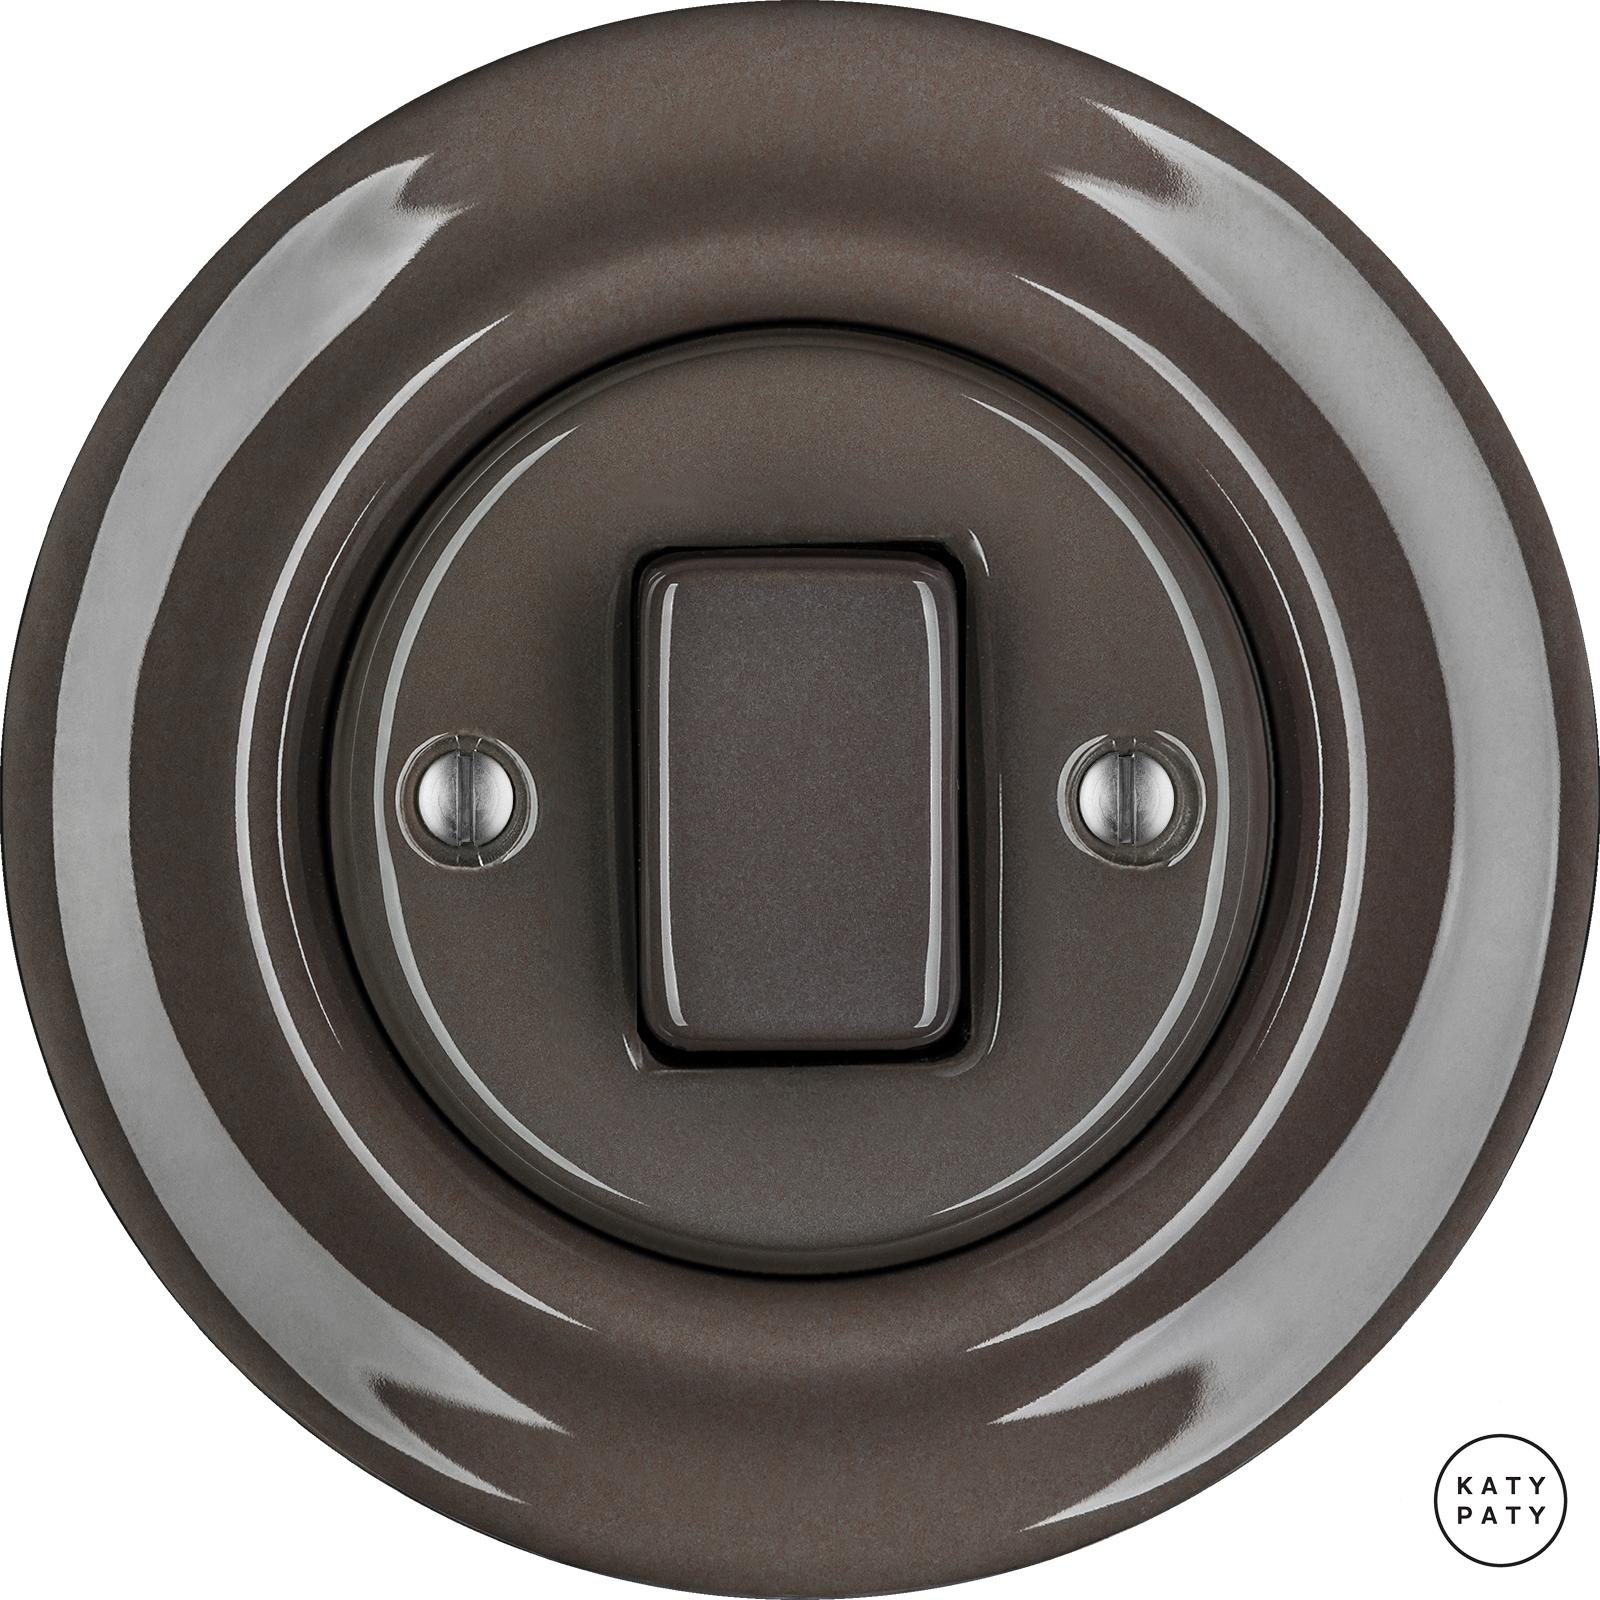 Porcelain switches - a single key - FAT ()  - BRUNETUM | Katy Paty